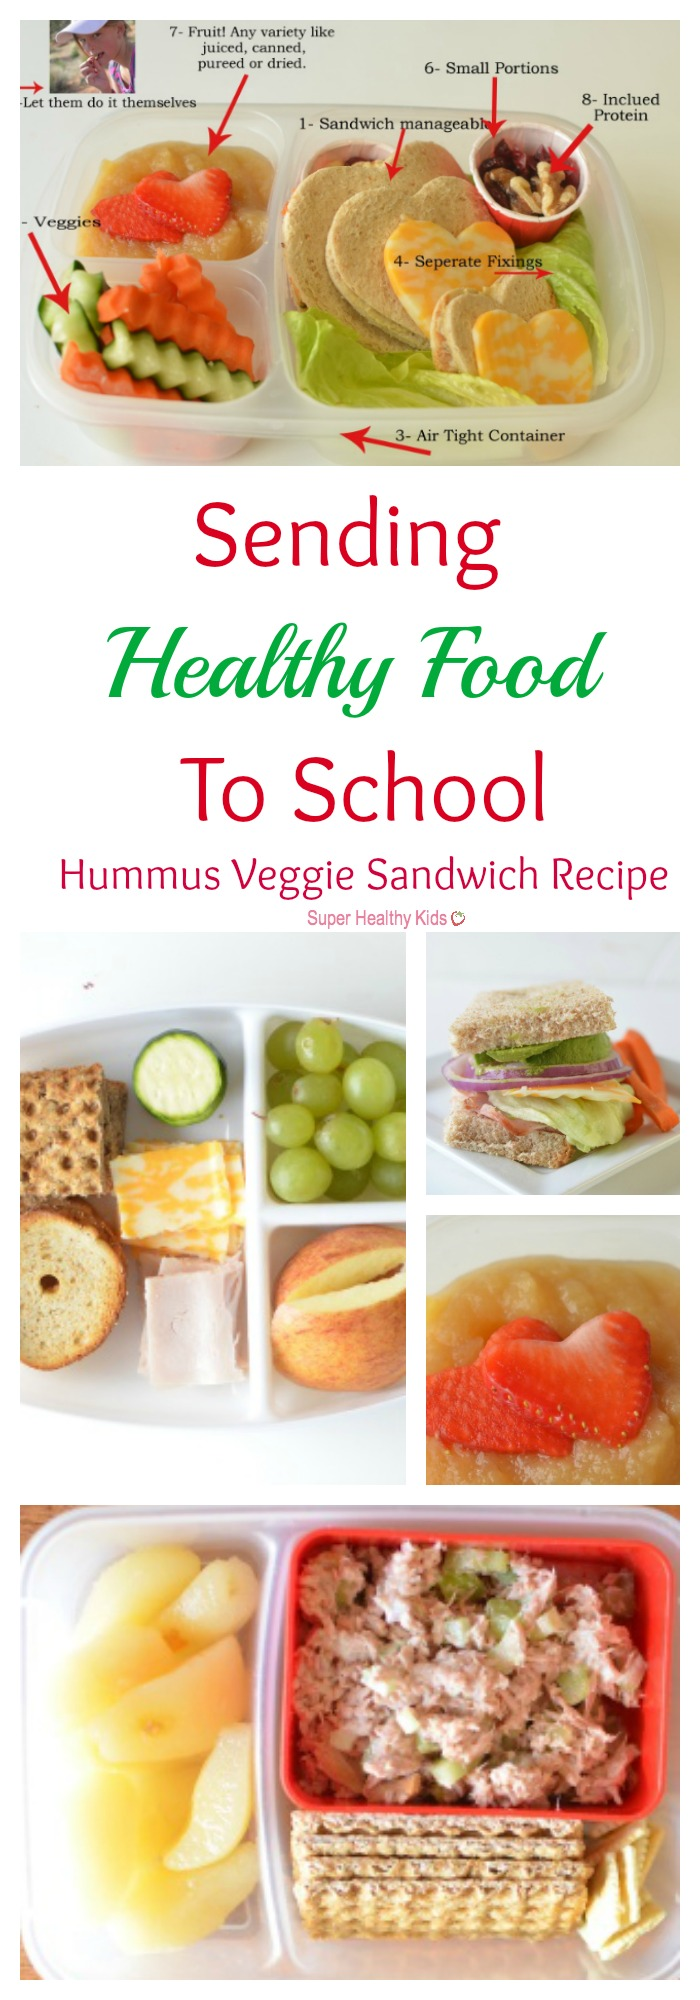 Sending Healthy Food To School {Hummus Veggie Sandwich Recipe}. Cuteness aside, there are some solid packing tips here for you! No Heart cutters necessary! http://www.superhealthykids.com/sending-healthy-food-to-school-hummus-veggie-sandwich/